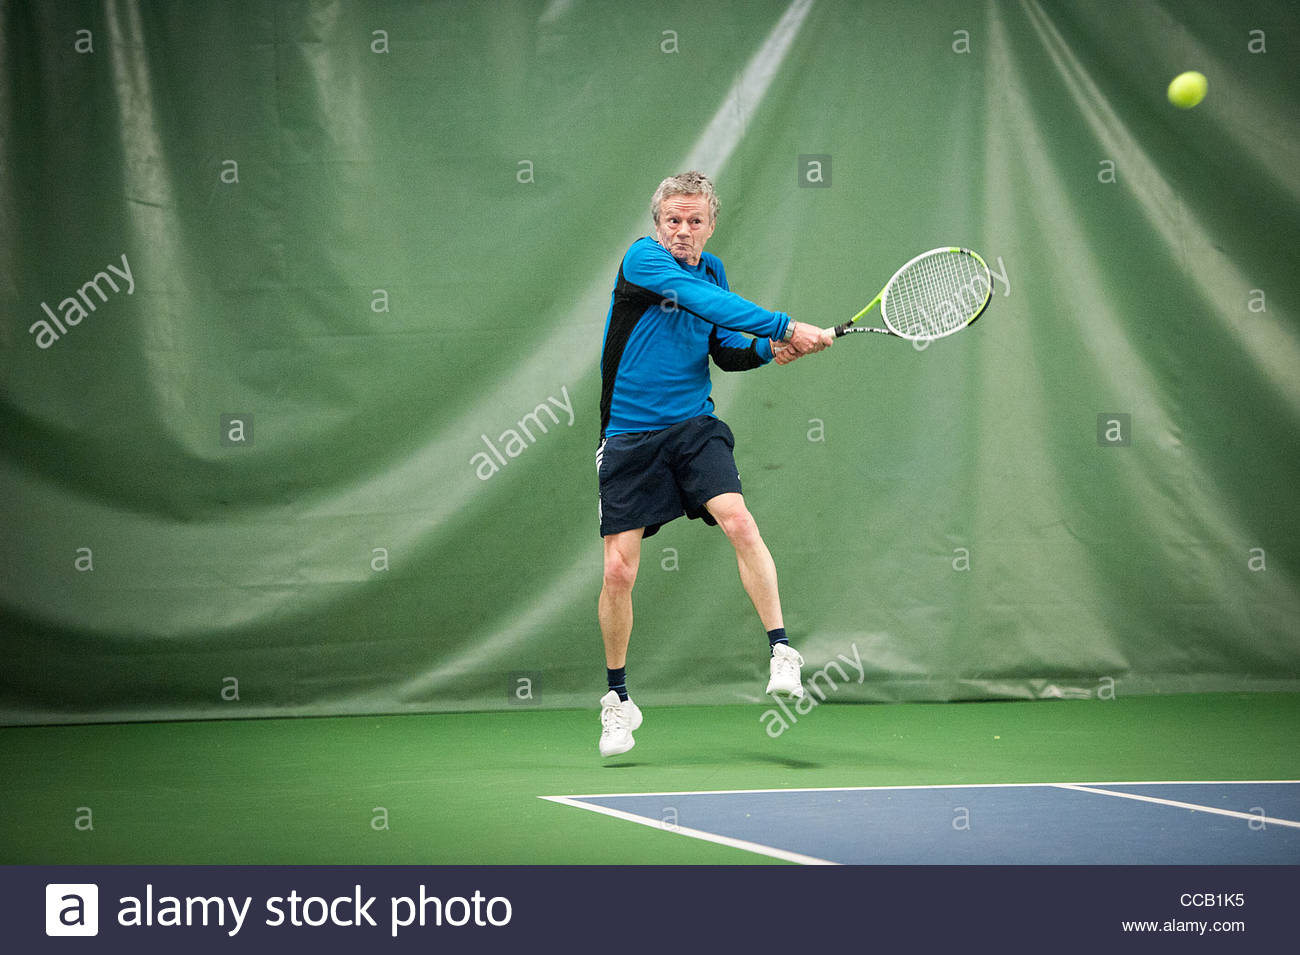 Indoor tennisplayer - Stock Image